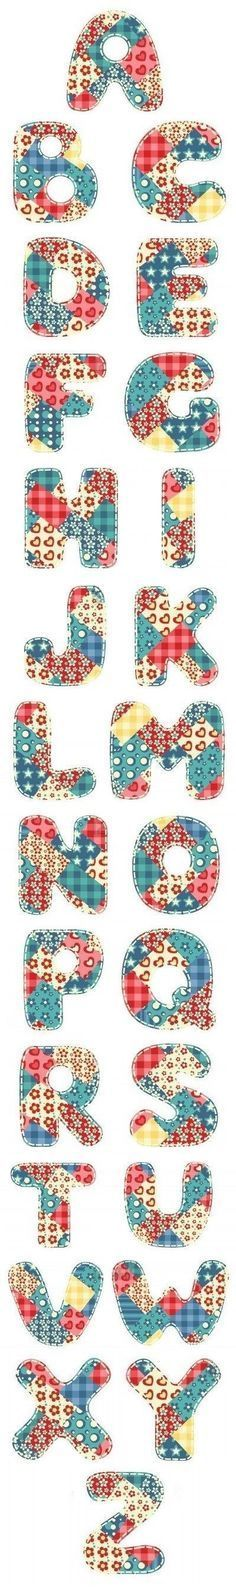 Discover thousands of images about Embroidery Baby Applique, Applique Patterns, Applique Designs, Quilt Patterns, Embroidery Designs, Sewing Patterns, Alphabet Symbols, Alphabet And Numbers, Sewing Crafts